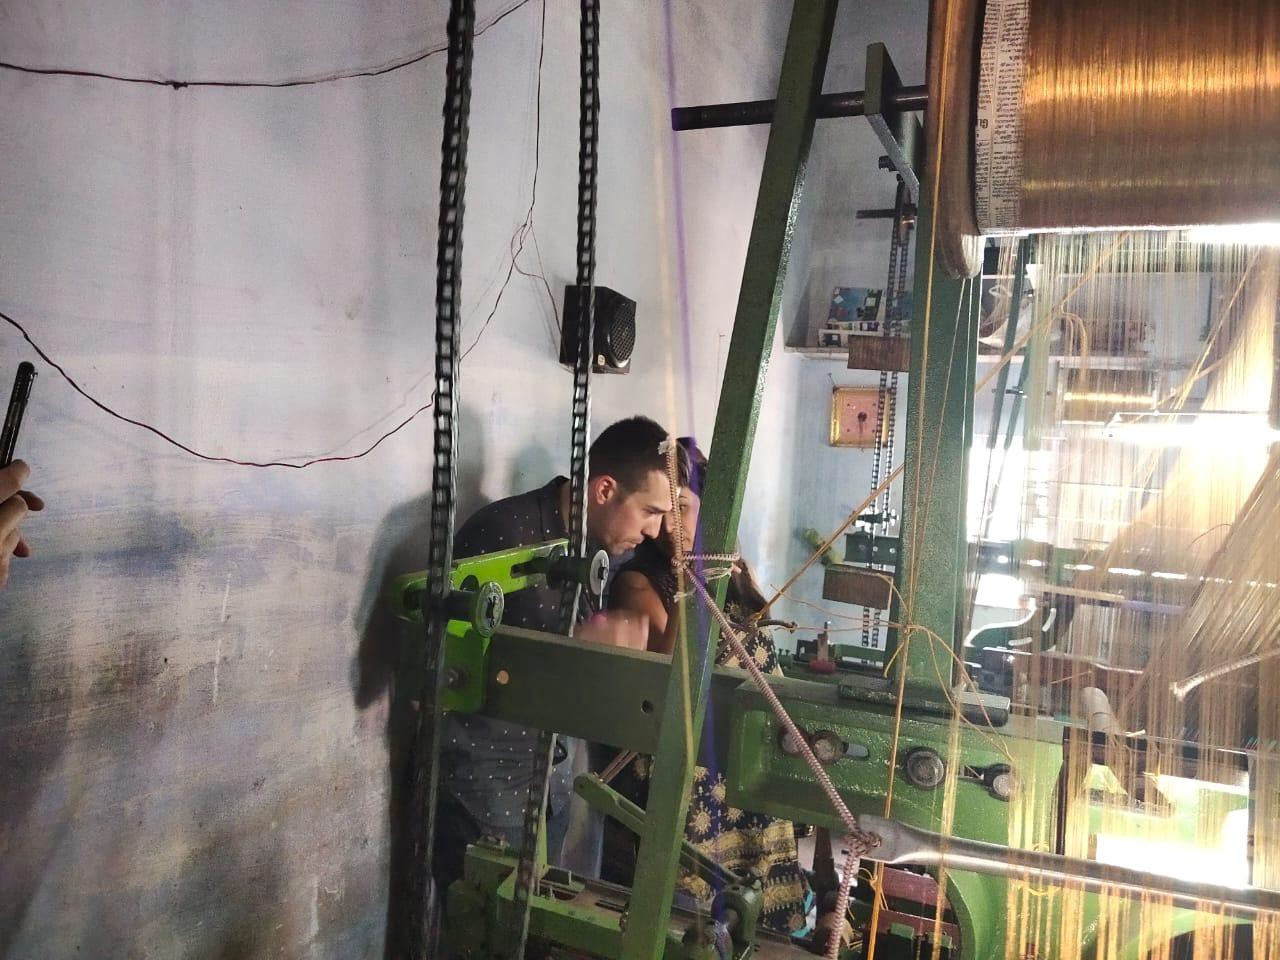 Matt and colleague at a textile loom facility in Chennai, India